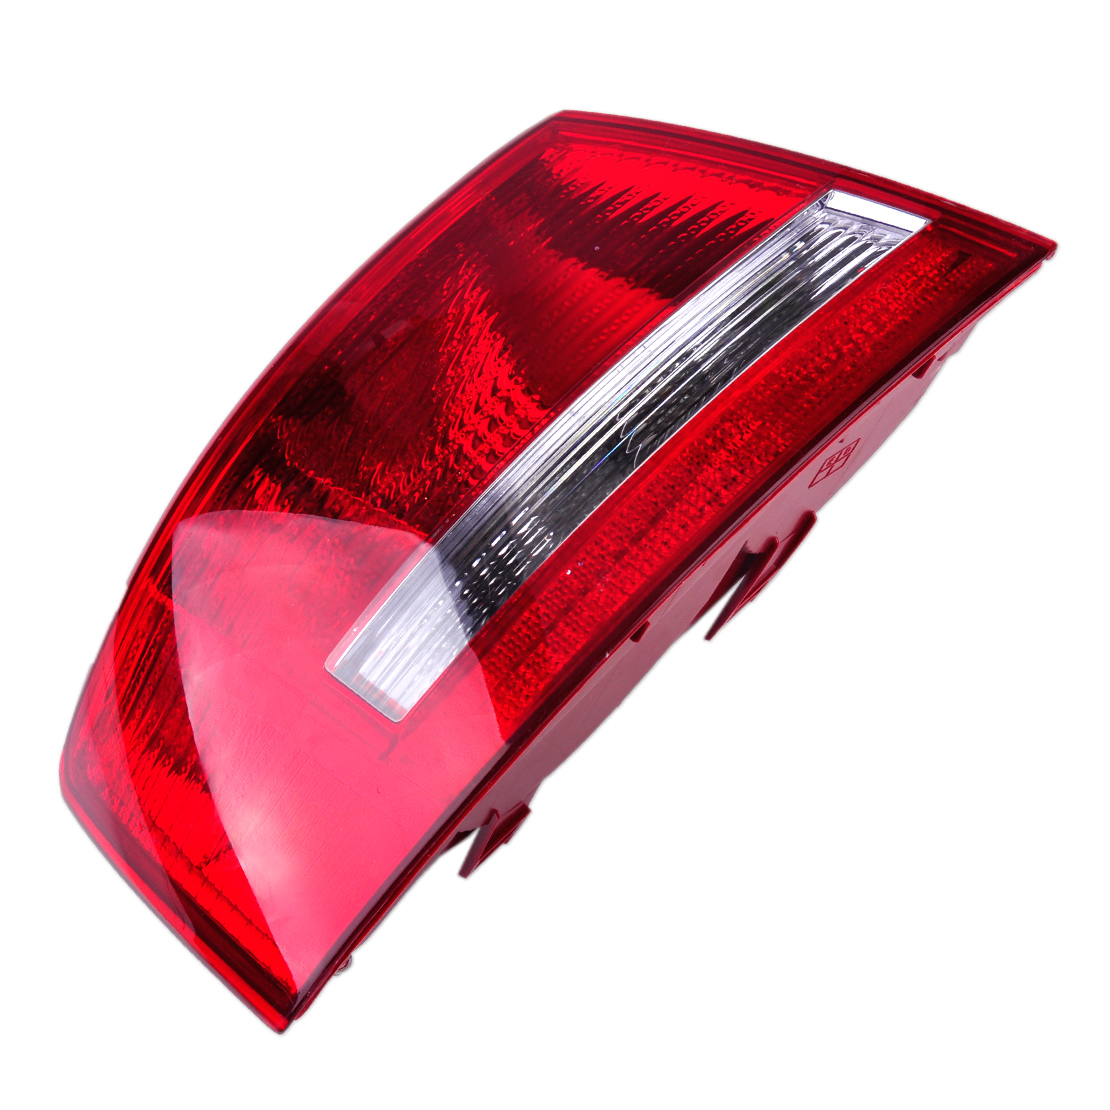 Beler car left tail light assembly lamp housing without bulb 4f5945095l 4f5945095d for audi a6